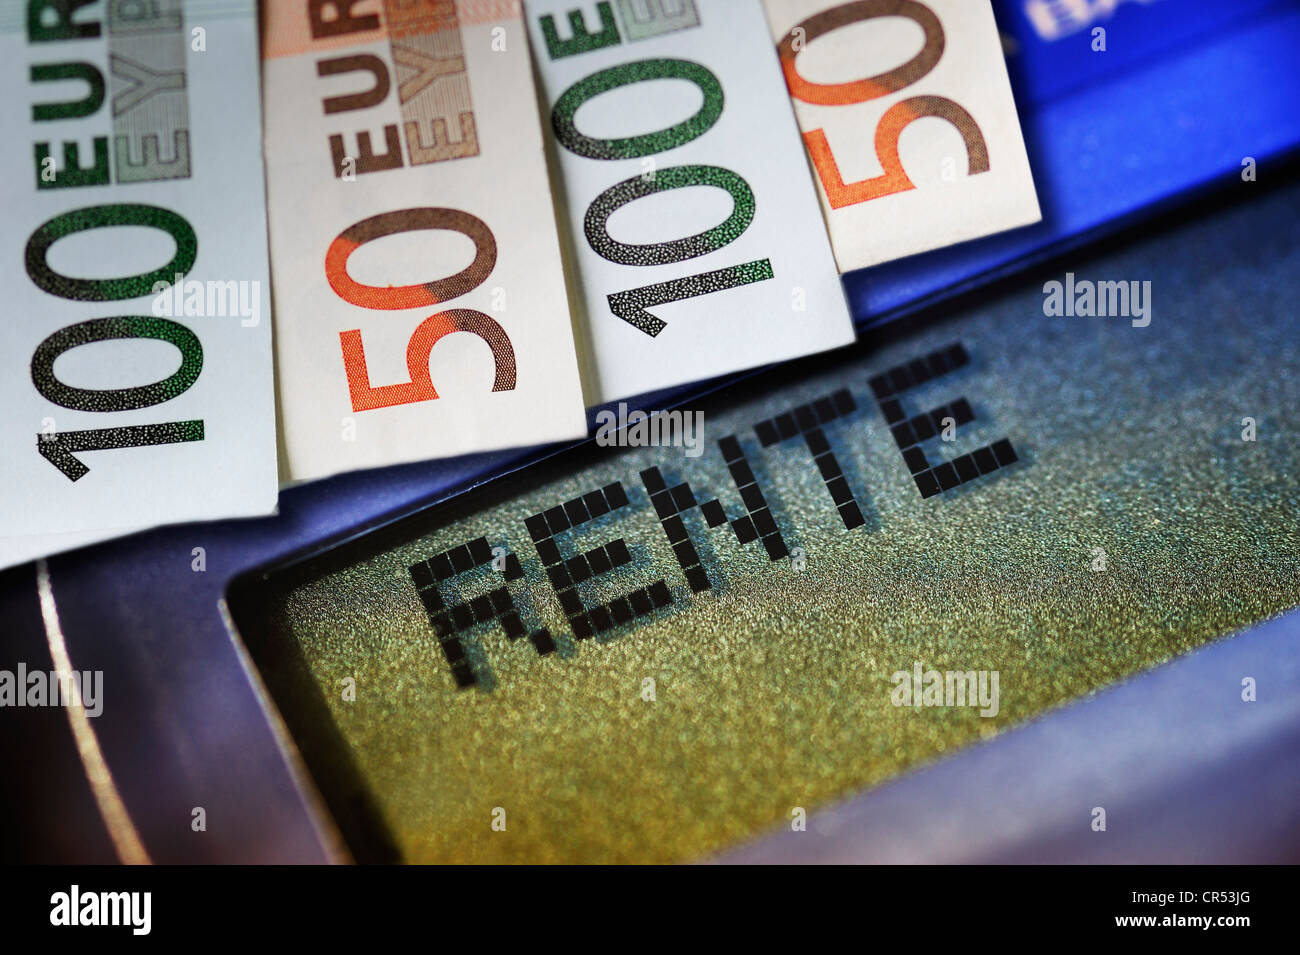 Lettering 'Rente', German for 'pension', on a calculator and banknotes, symbolic image - Stock Image